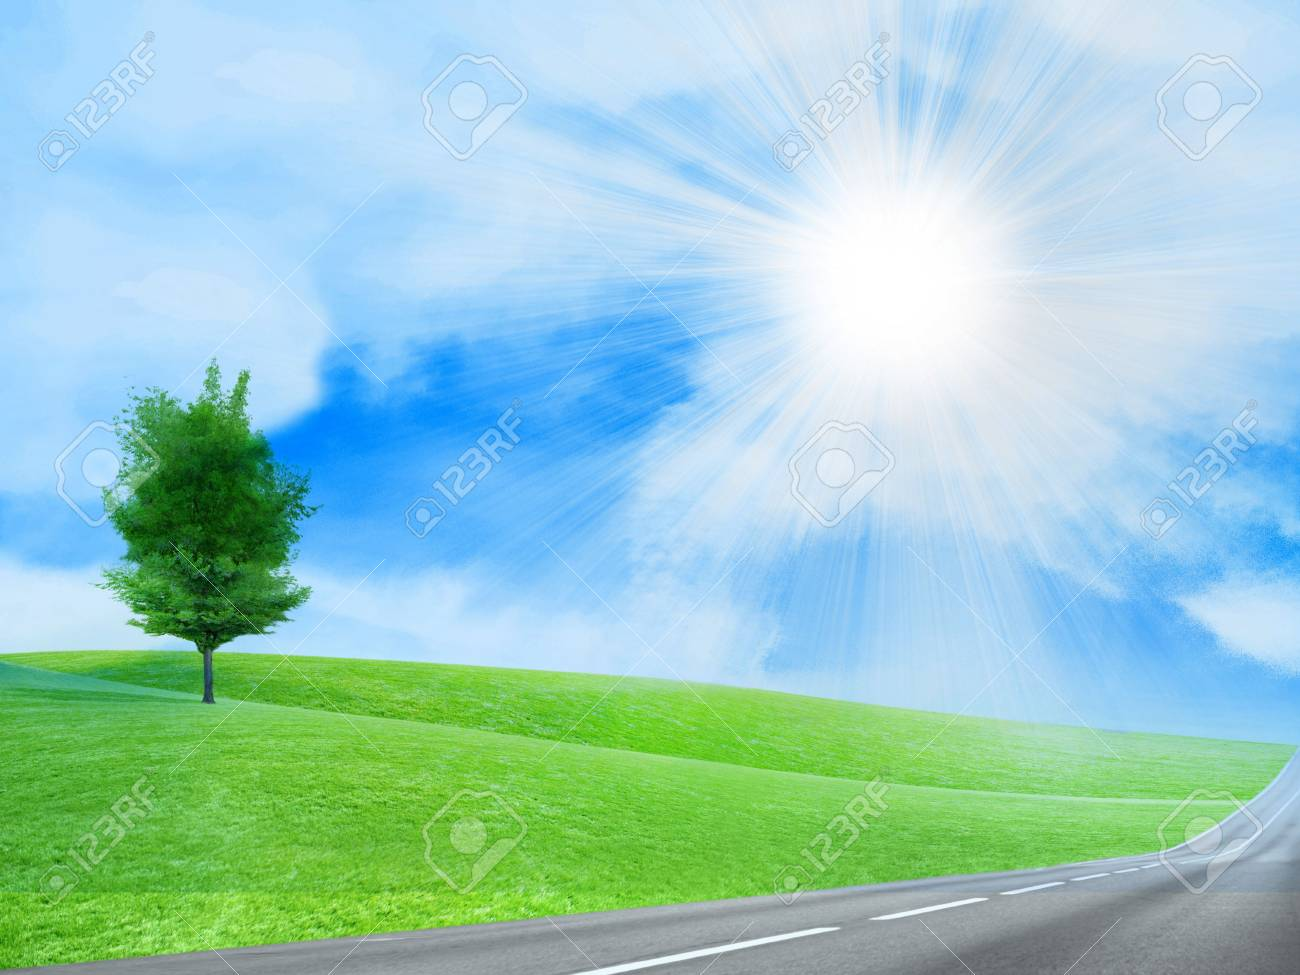 abstract scene of the road under blue sky Stock Photo - 4456561